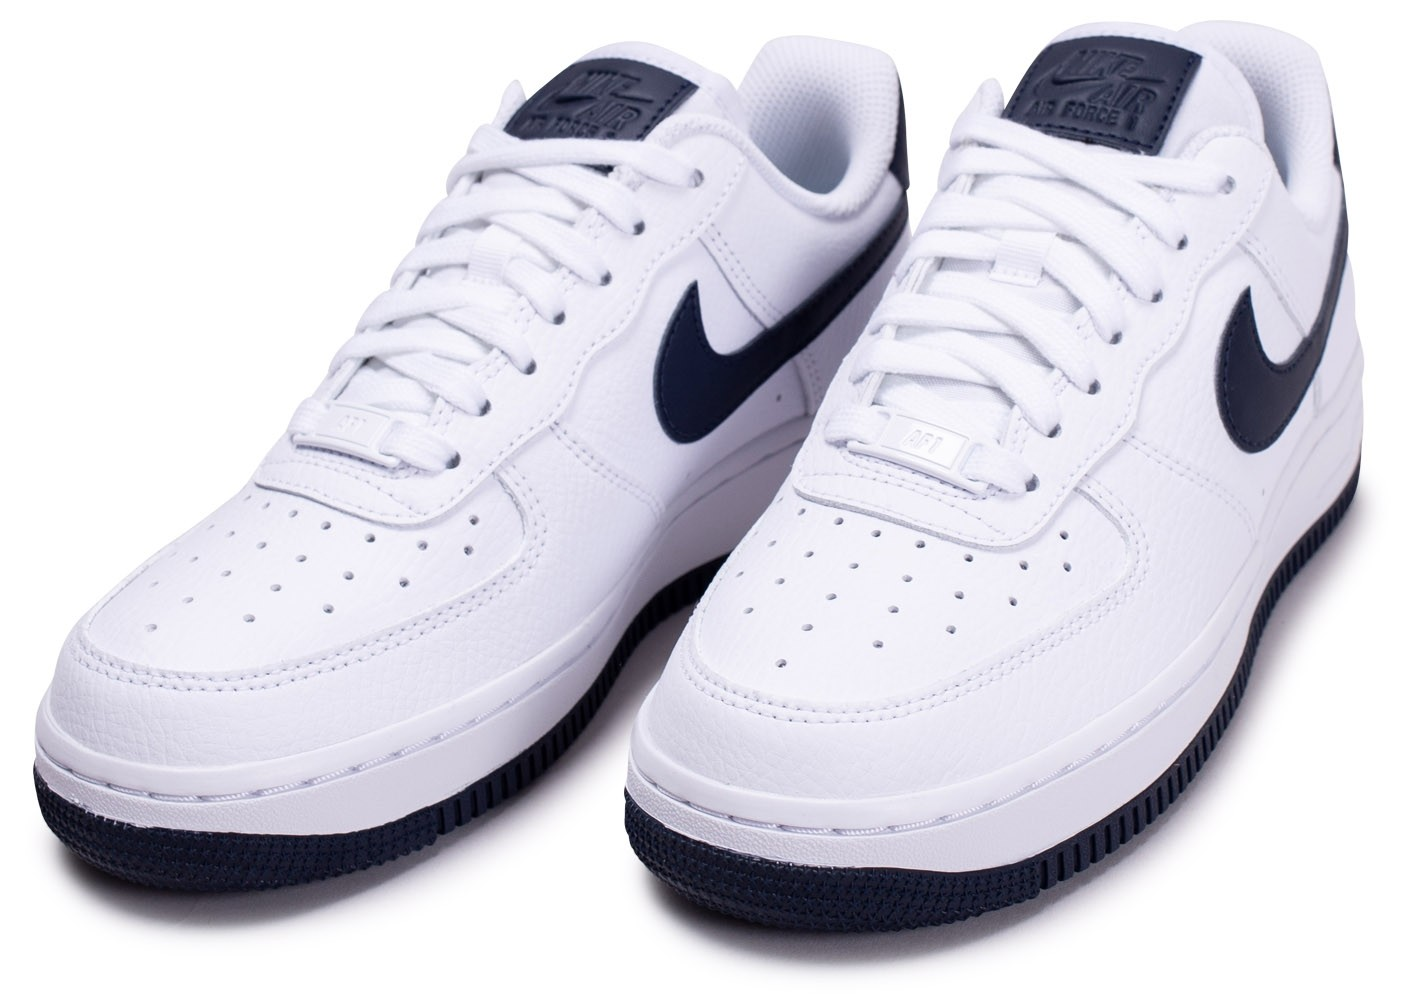 Nike Air Force 1 07 blanche et bleue femme - Chaussures ...